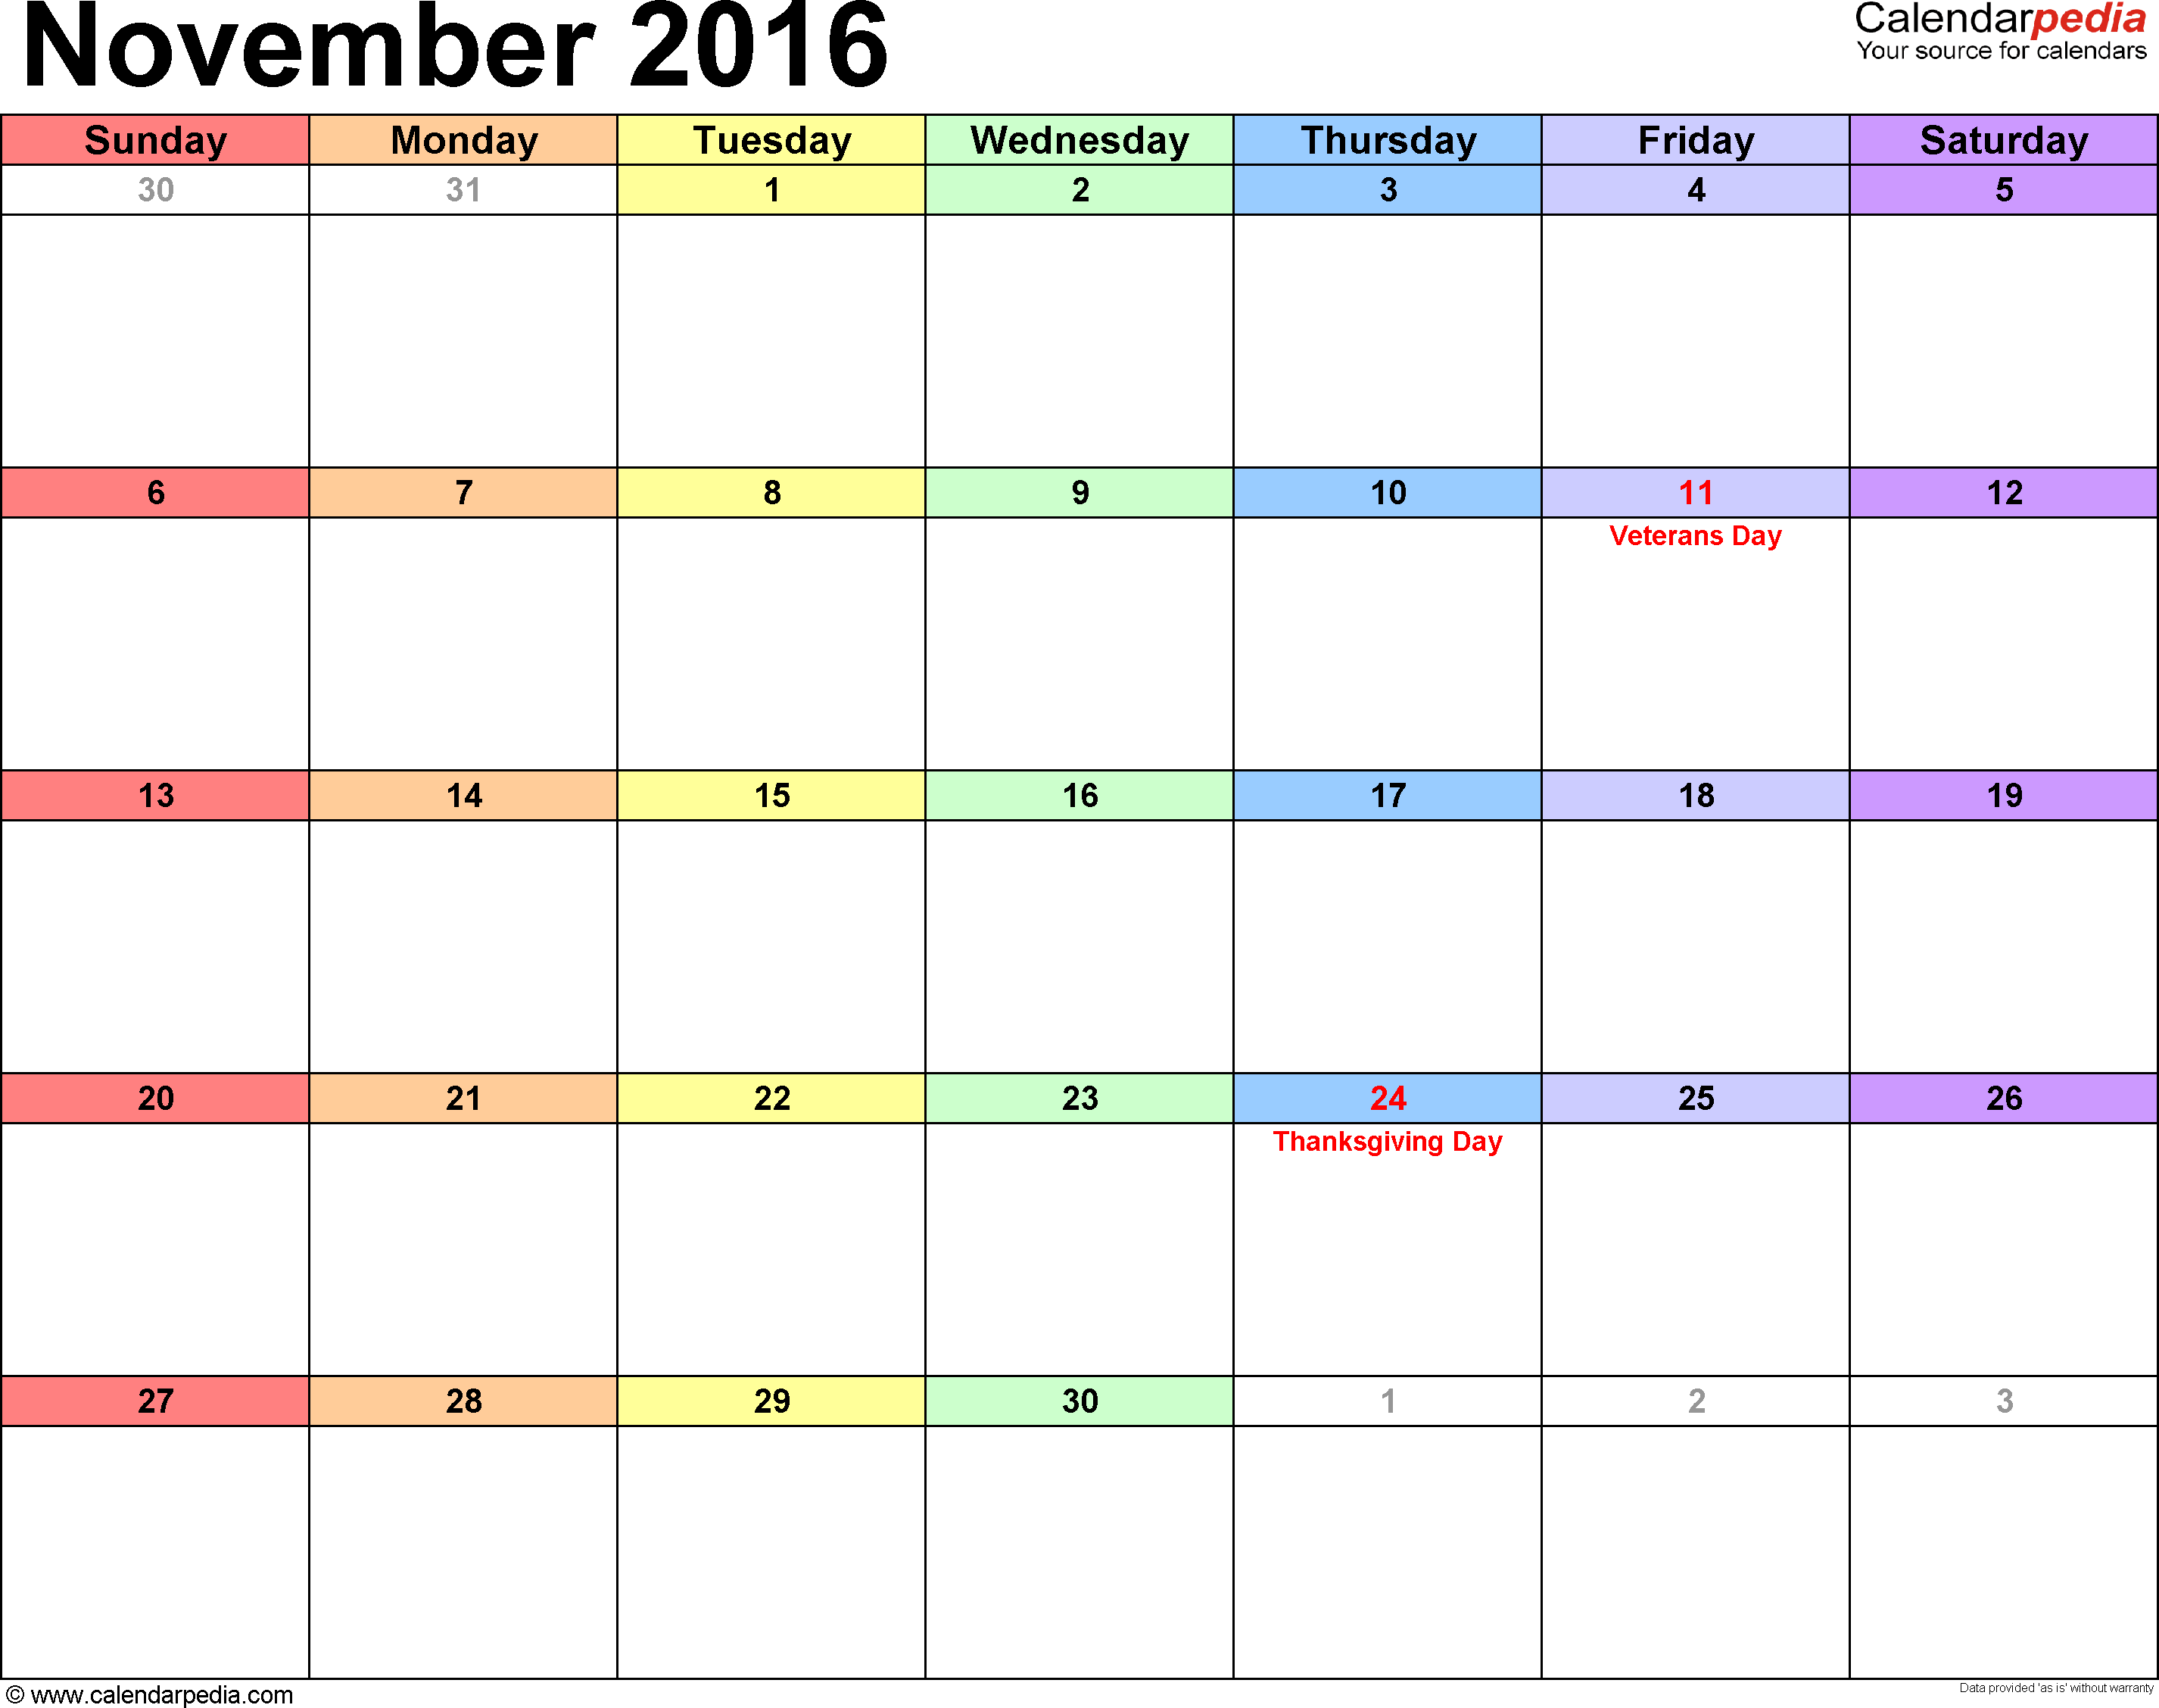 Colorful December Calandar 2015 | Calendar Template 2016